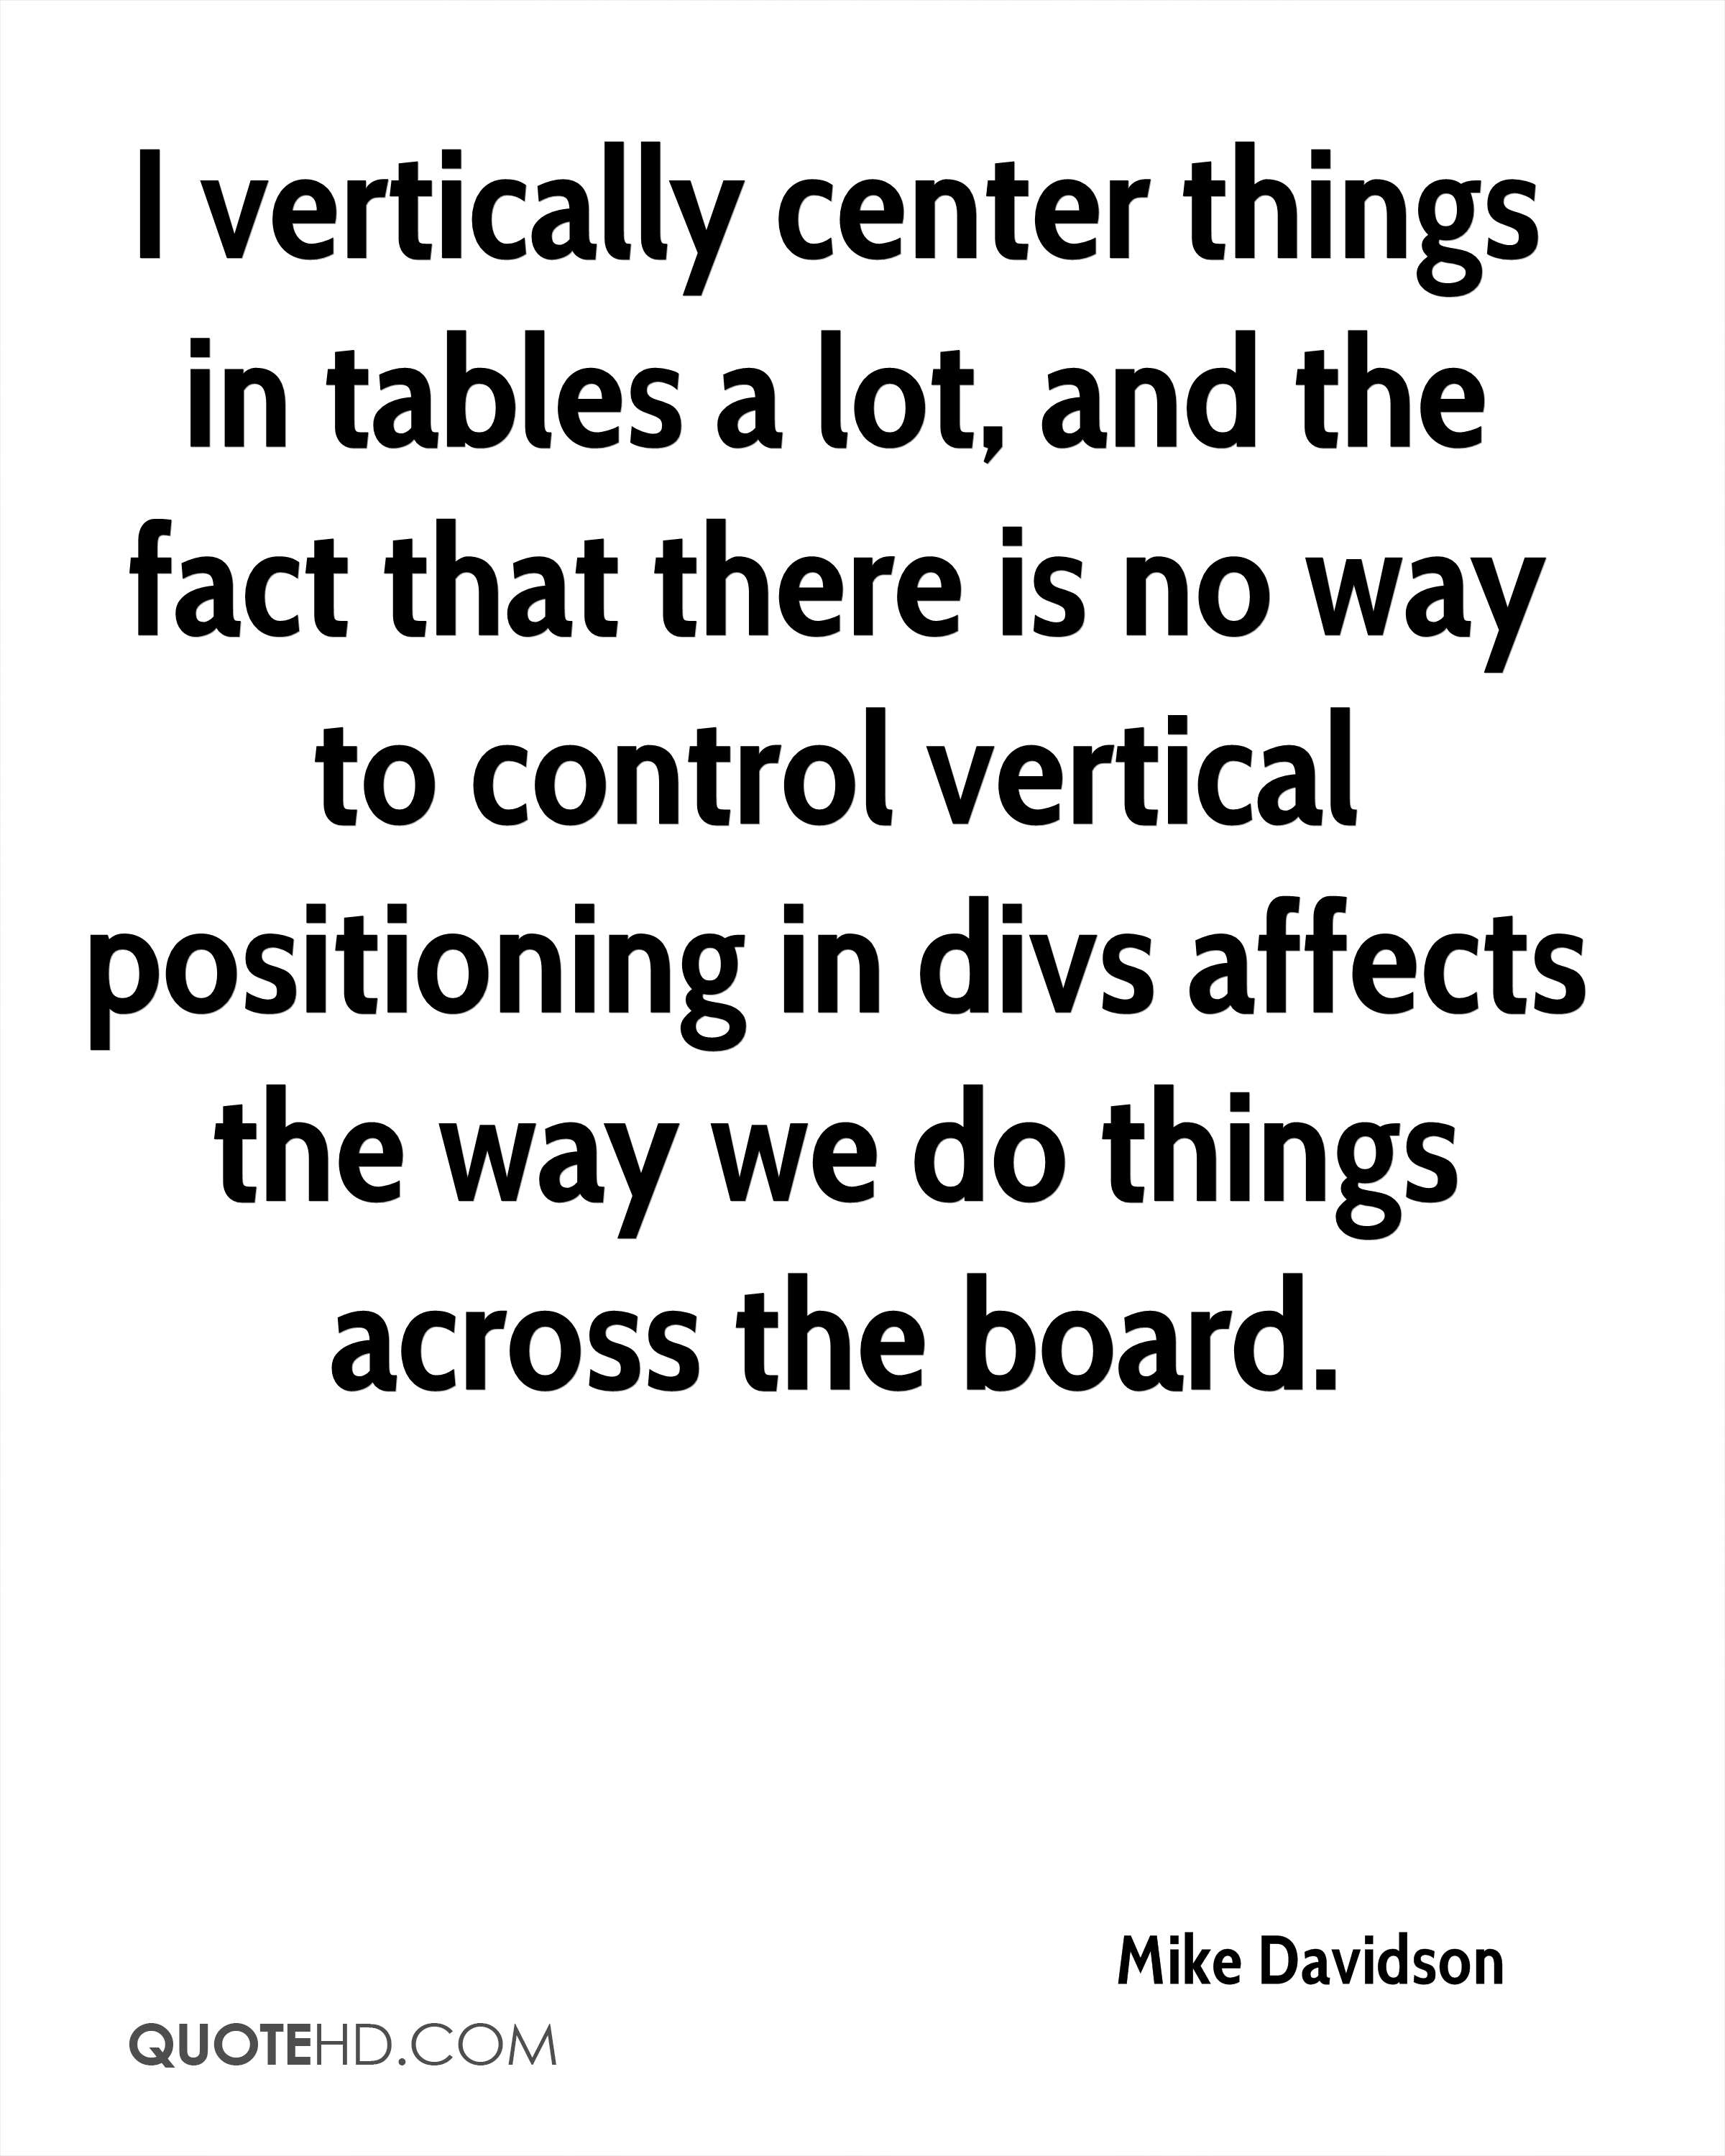 I vertically center things in tables a lot, and the fact that there is no way to control vertical positioning in divs affects the way we do things across the board.